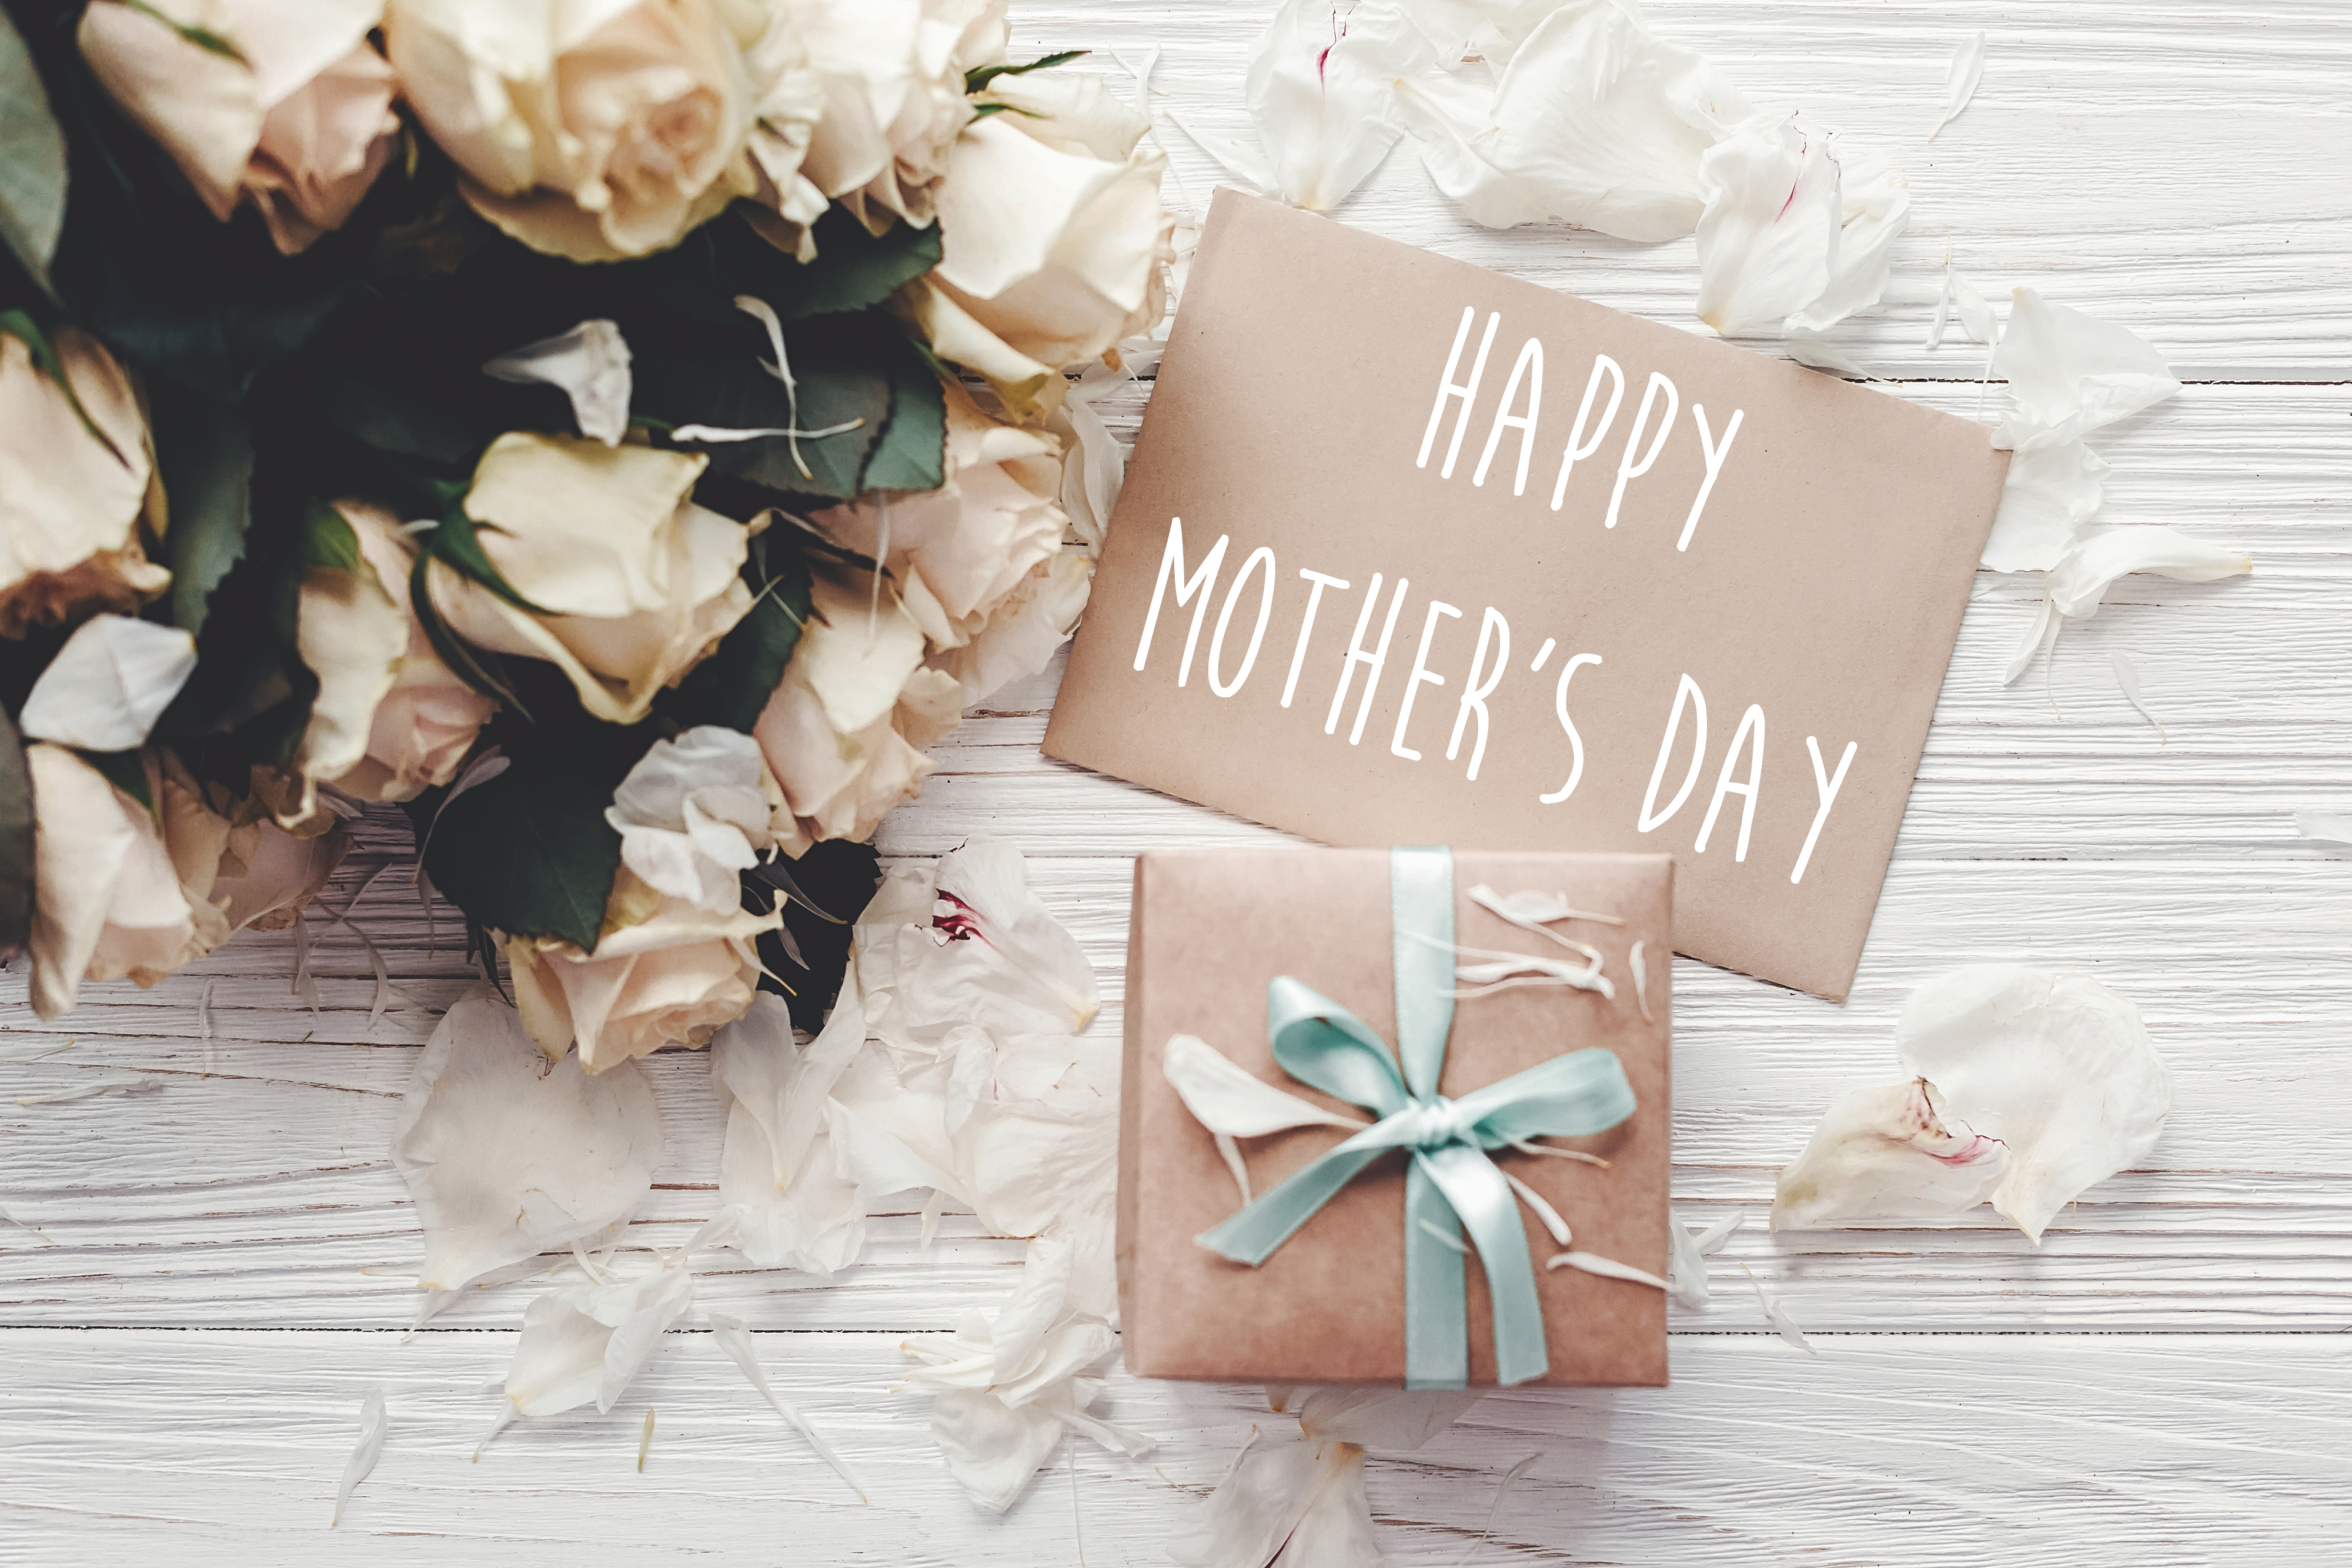 Happy,Mother's,Day,Text,Sign,On,Craft,Greeting,Card,And